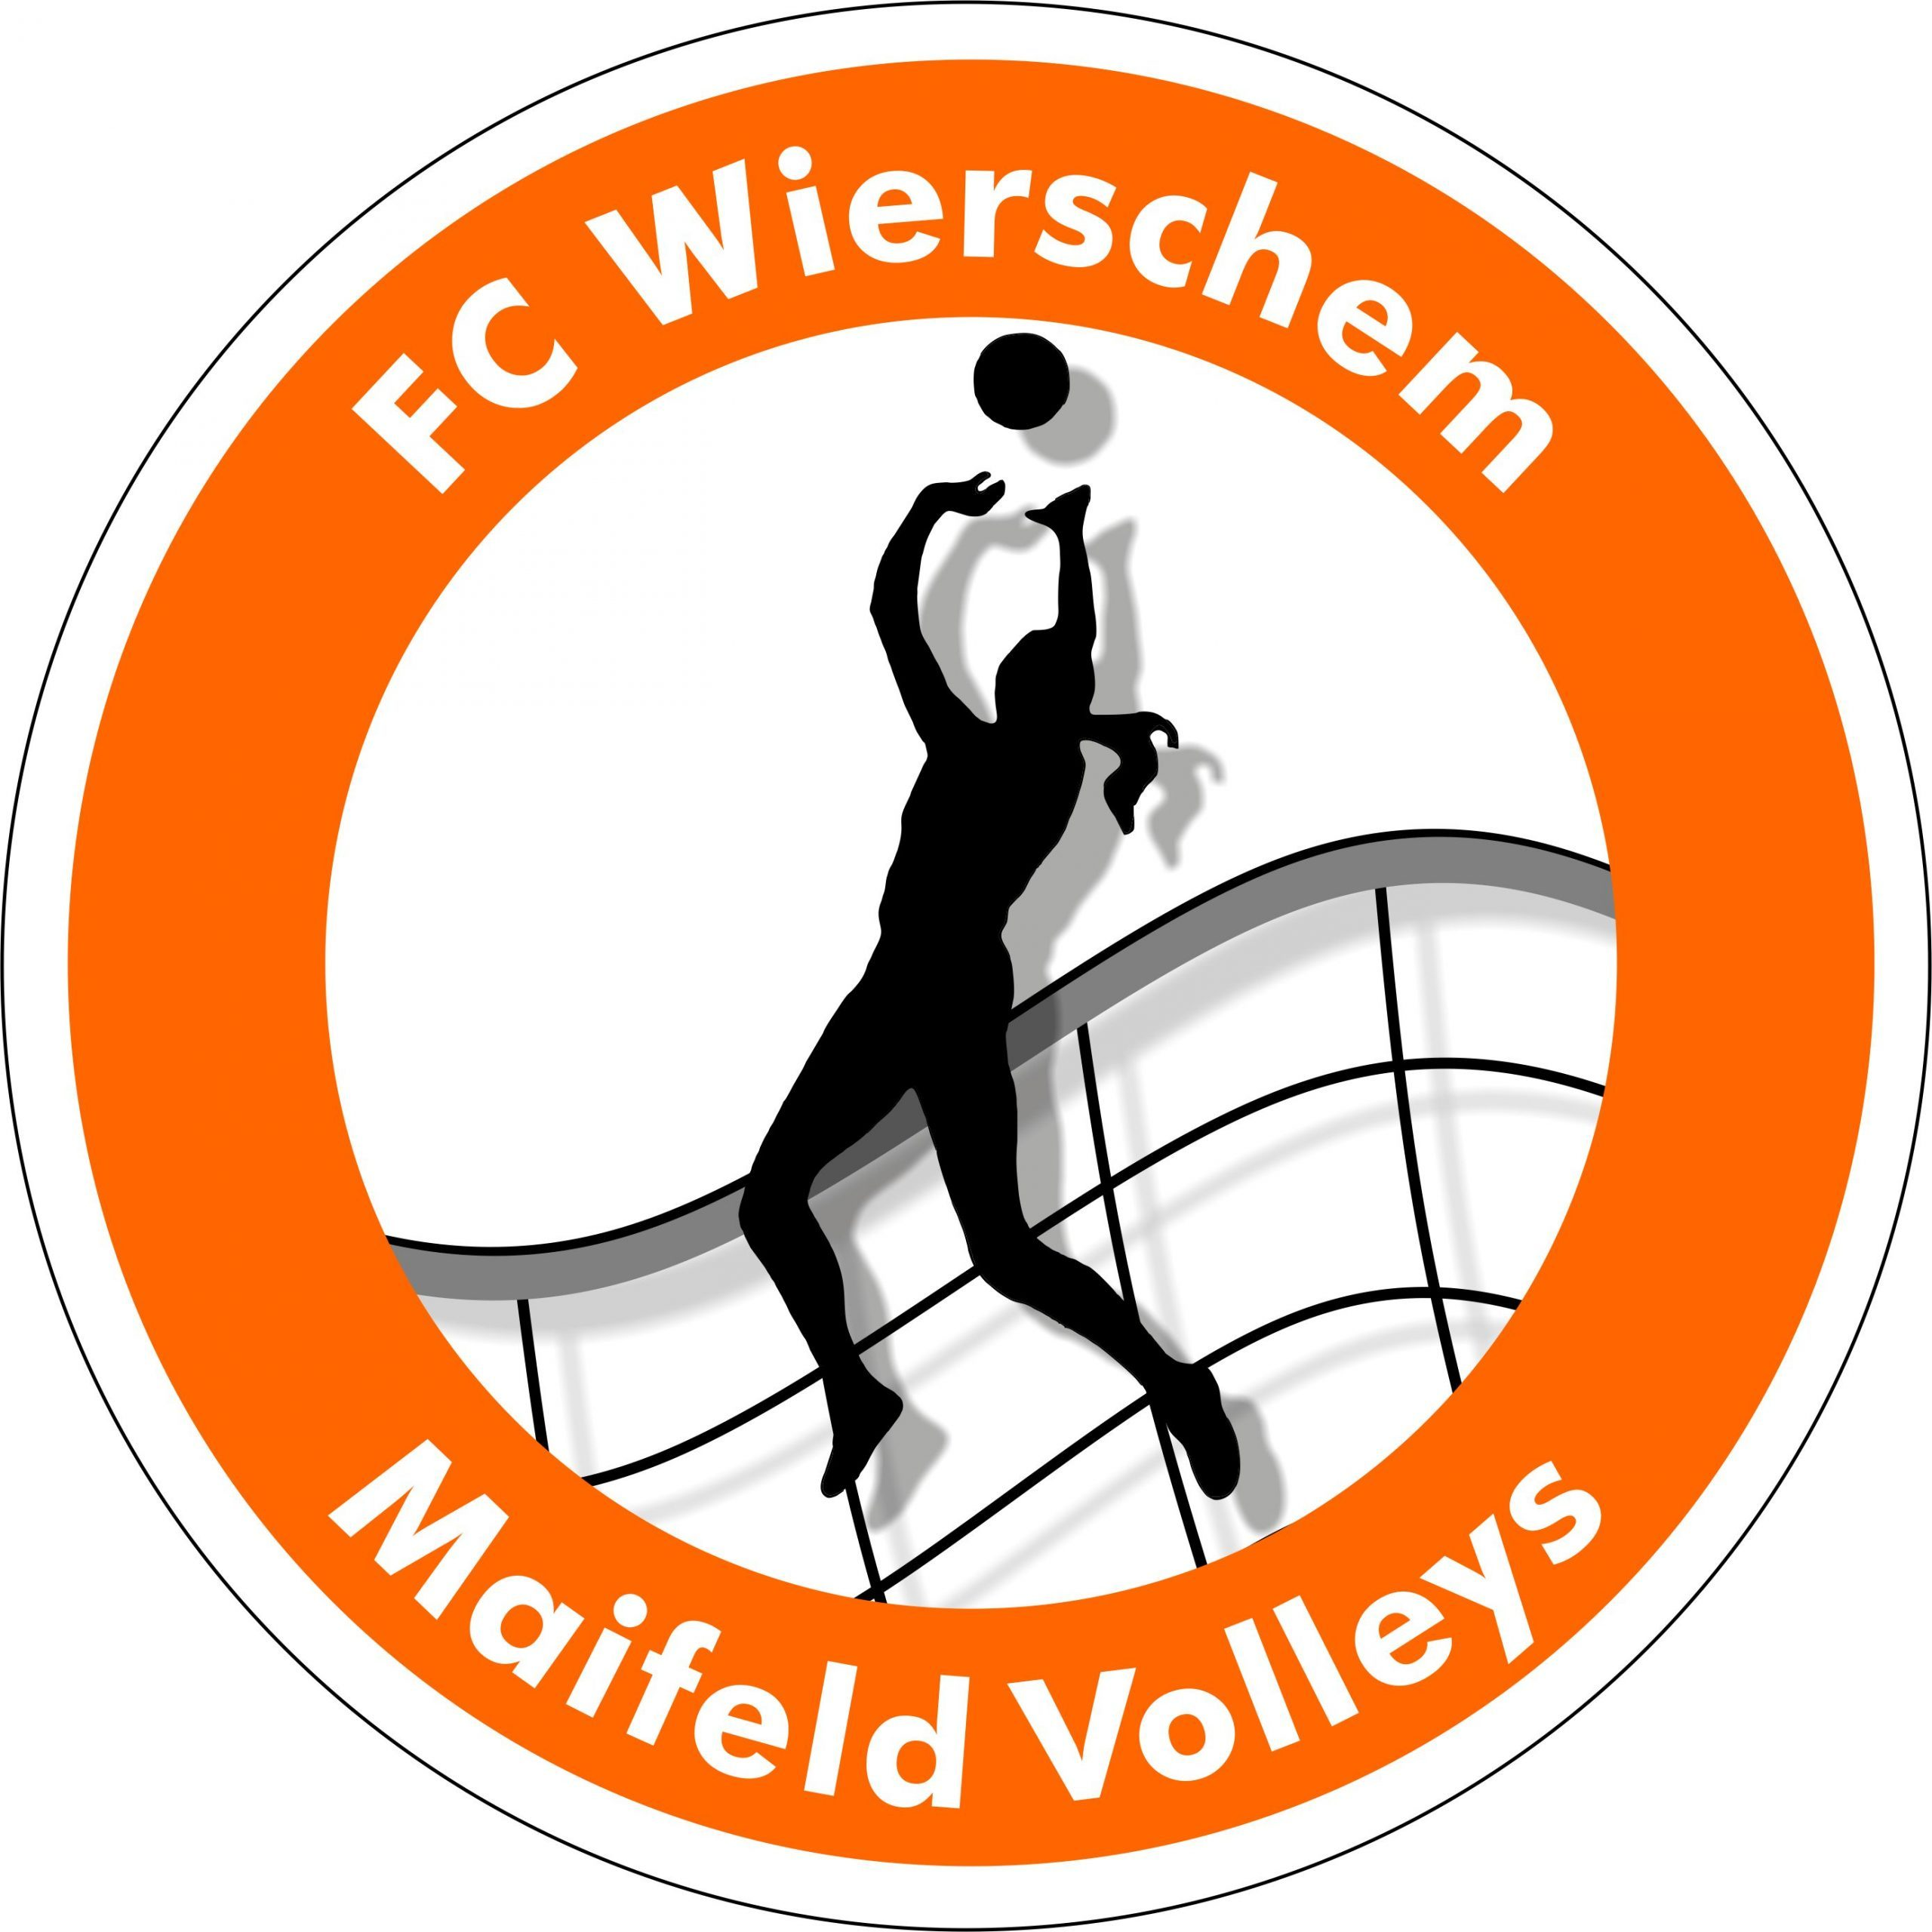 Maifeld Volleys